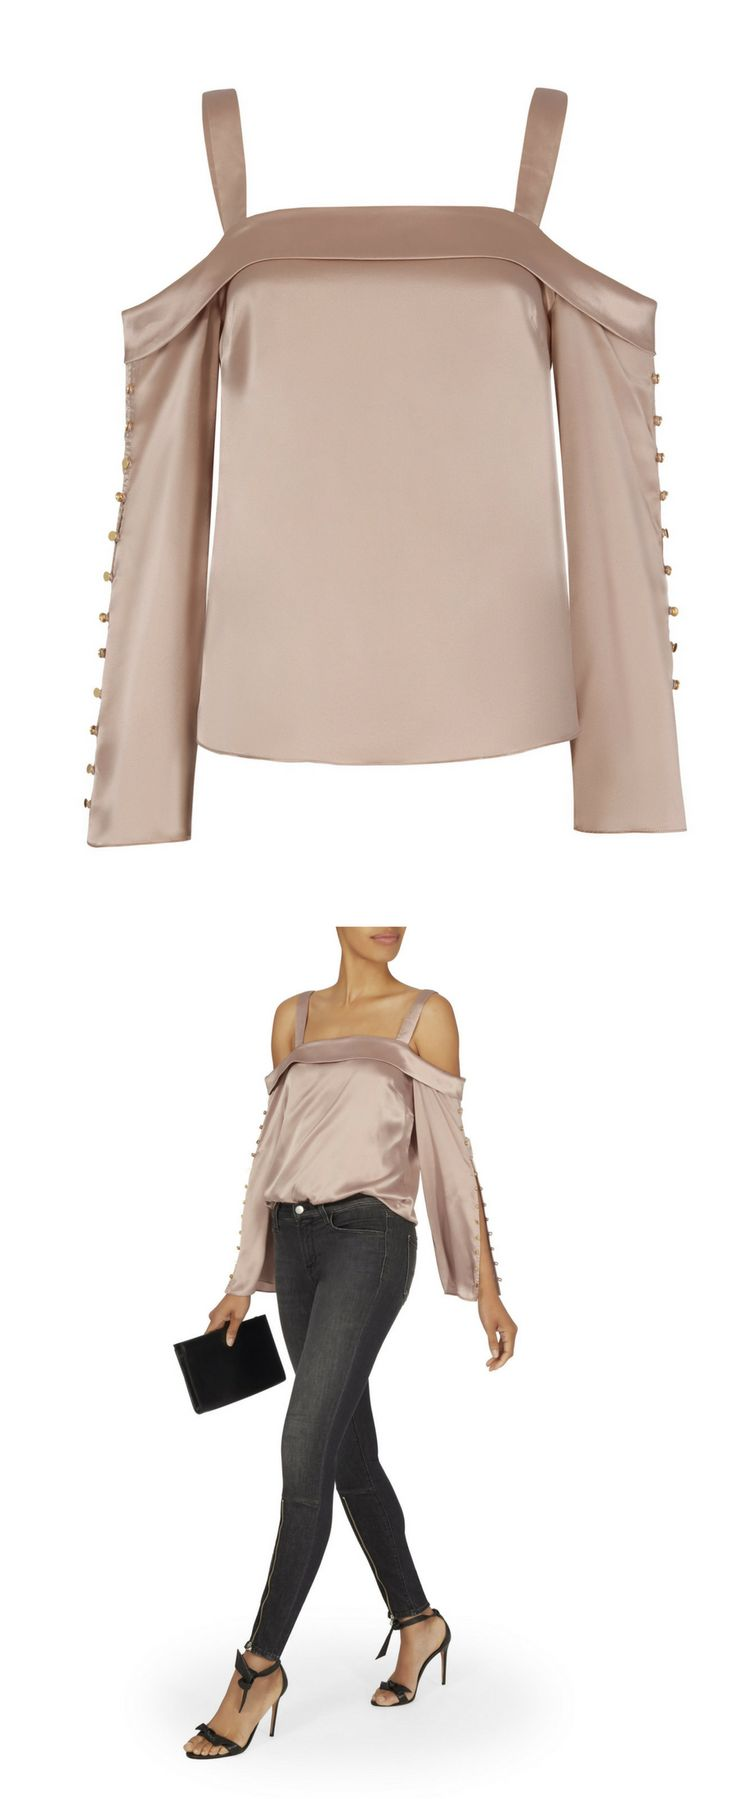 Fall fashion 2017, Gleaming gold-tone buttons detail the long sleeves of this elegant cold shoulder satin blouse. Square neckline with fold over detail. Keyhole opening at back with button closure.